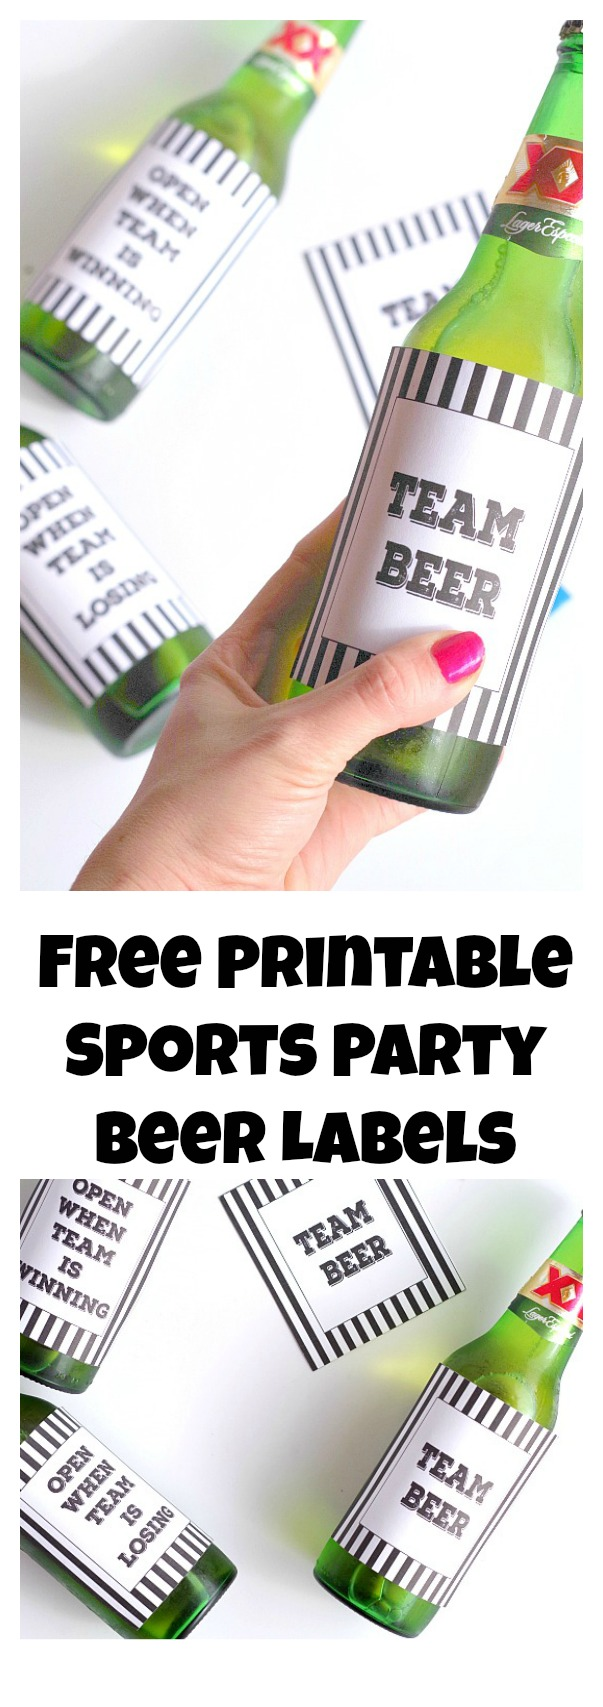 Free Printable Sports Party Beer Labels